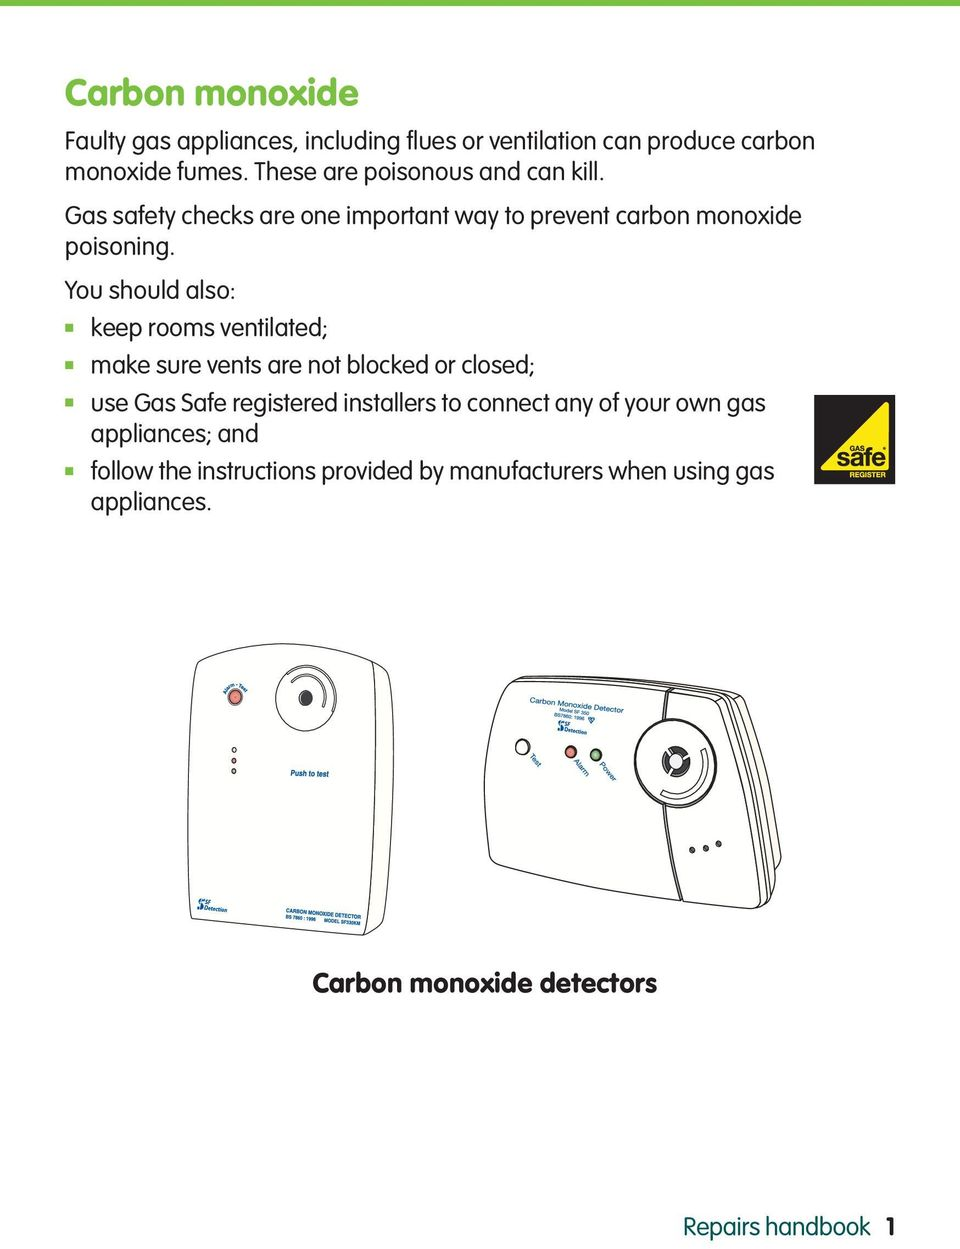 You should also: keep rooms ventilated; make sure vents are not blocked or closed; use Gas Safe registered installers to